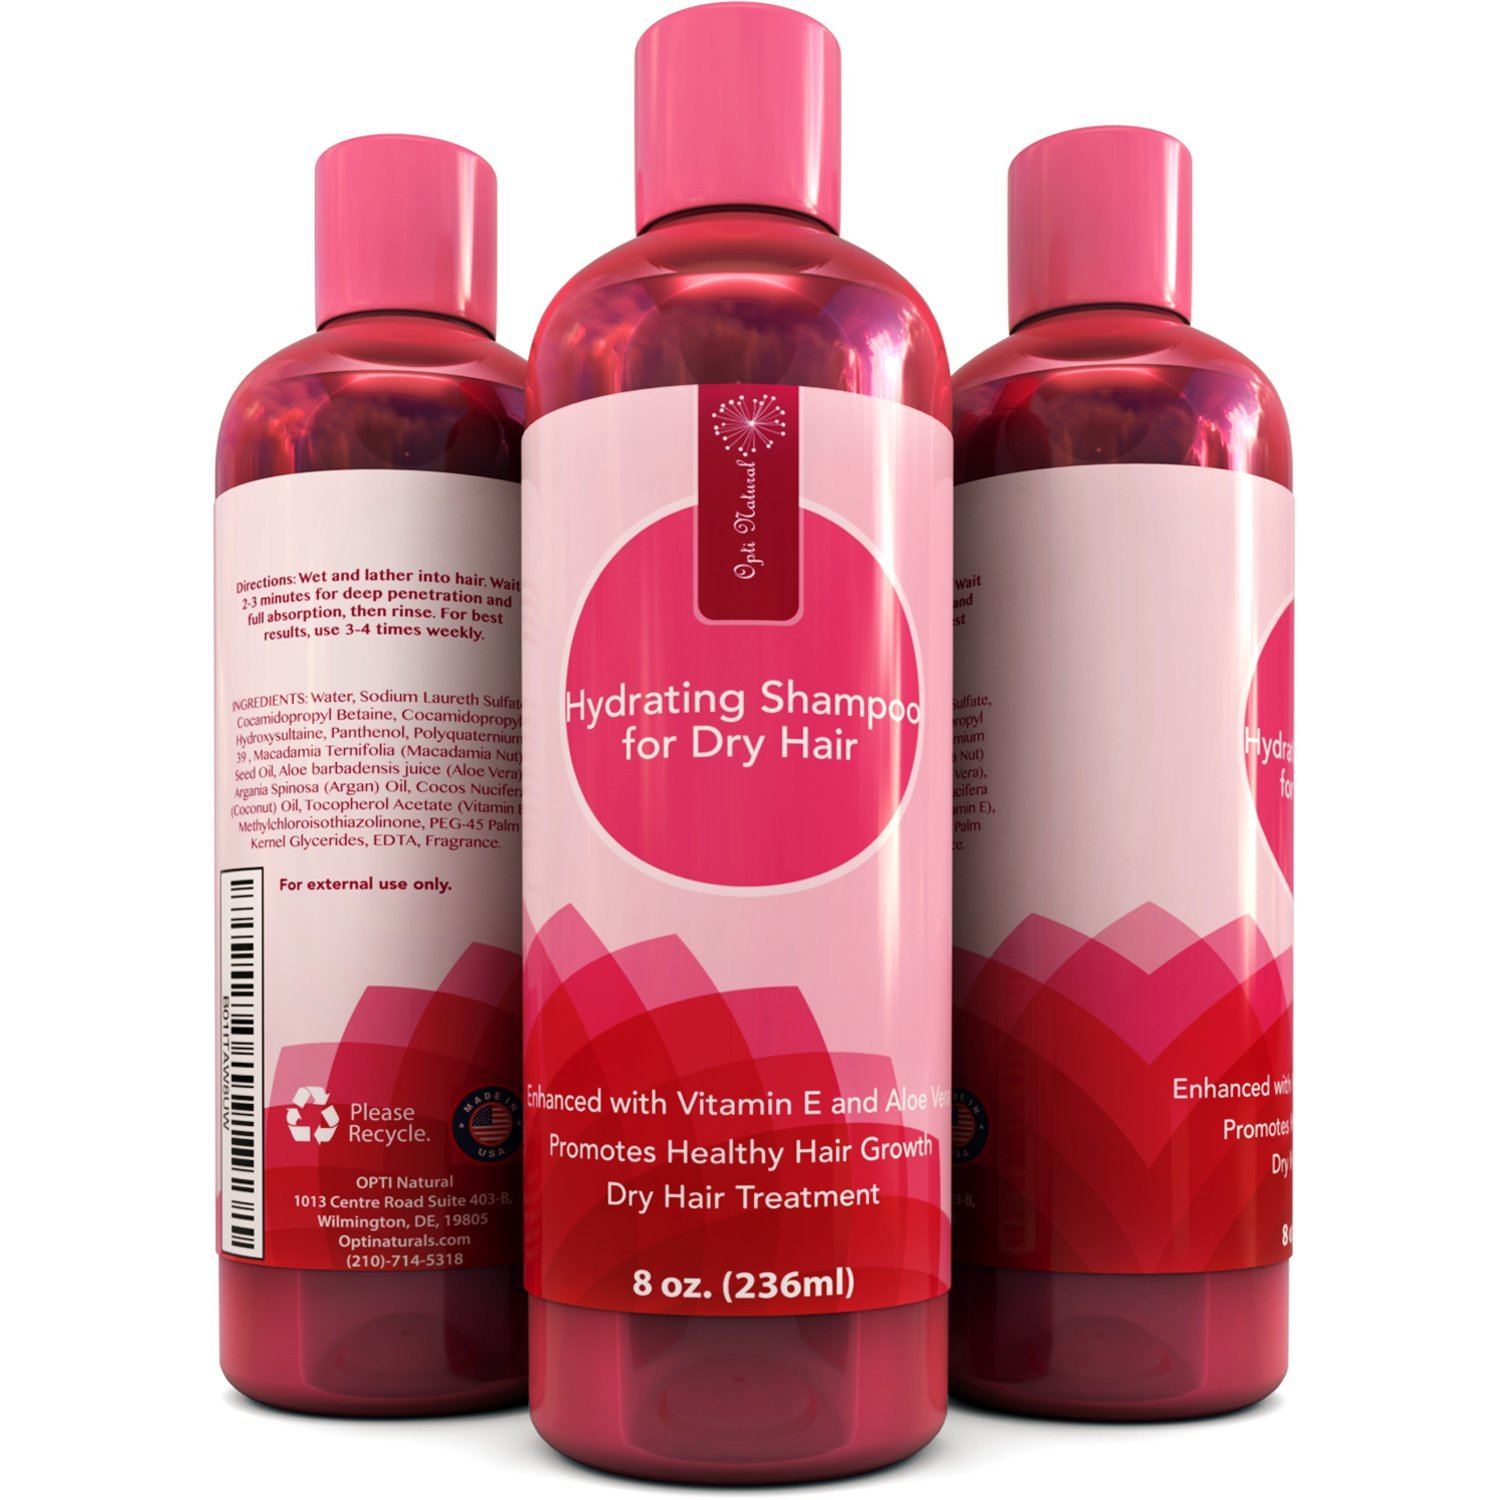 Cheap Shampoo For Dry Hair And Scalp Find Shampoo For Dry Hair And